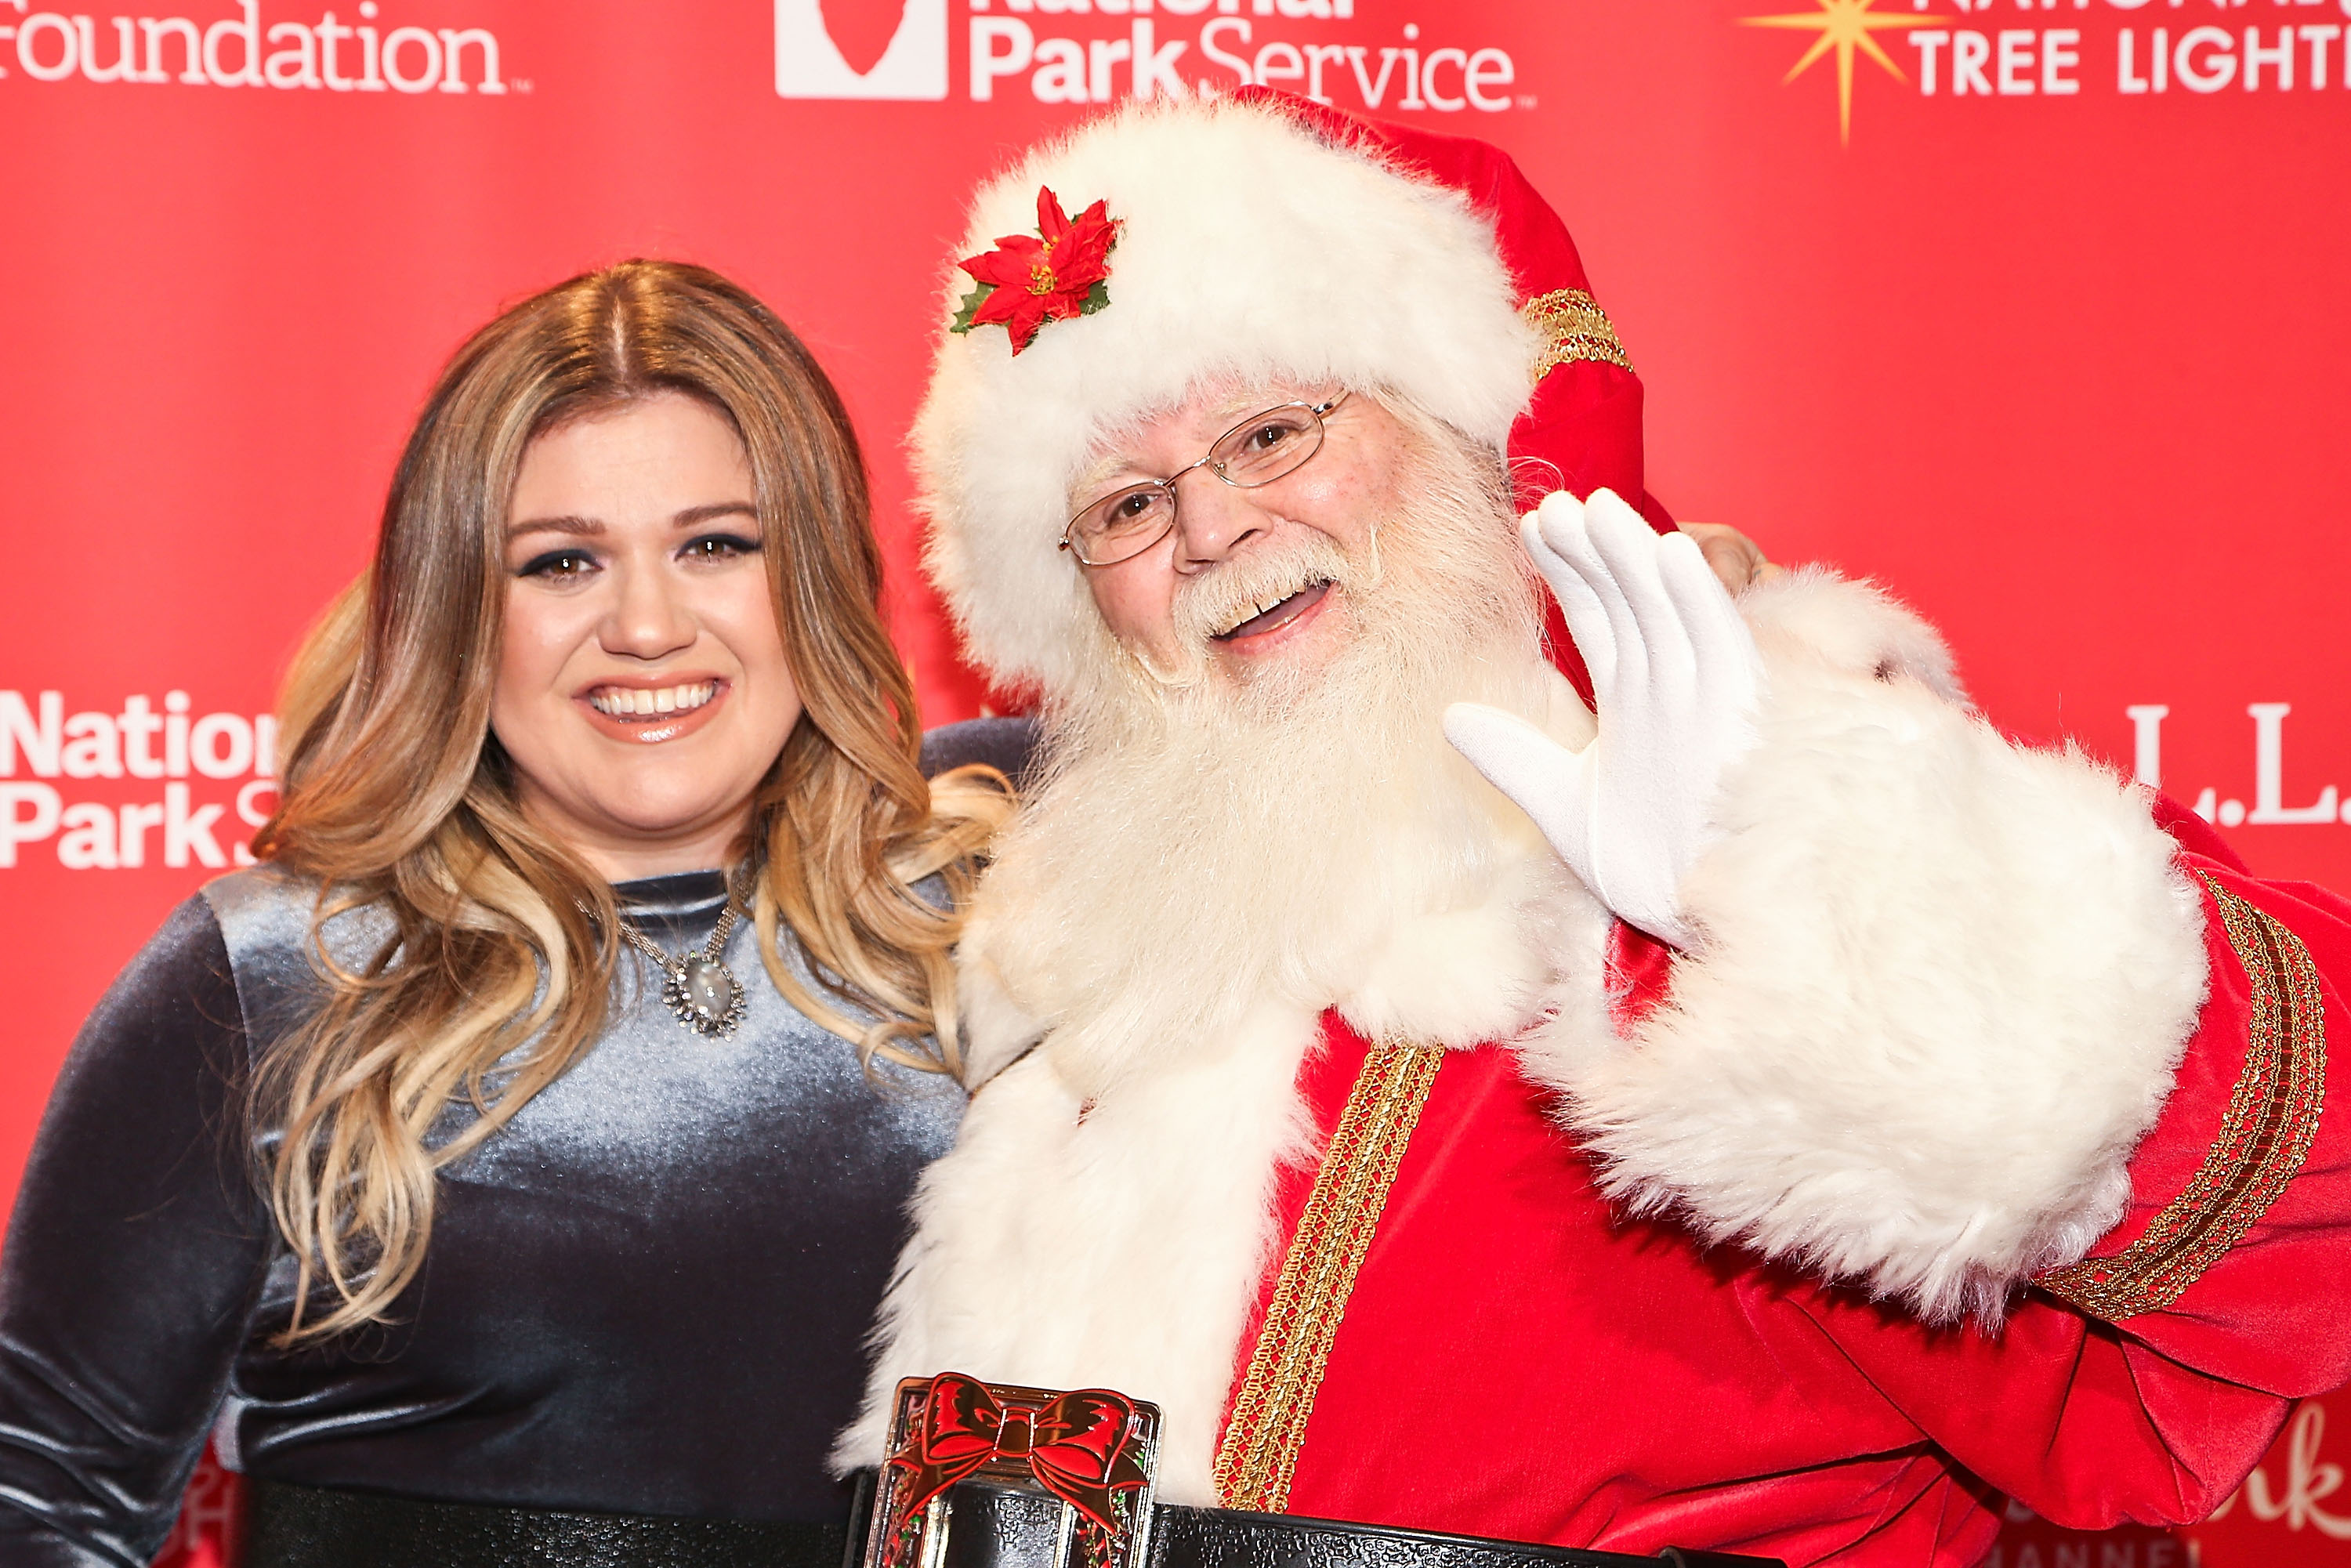 Kelly Clarkson's family is going hard for Christmas already